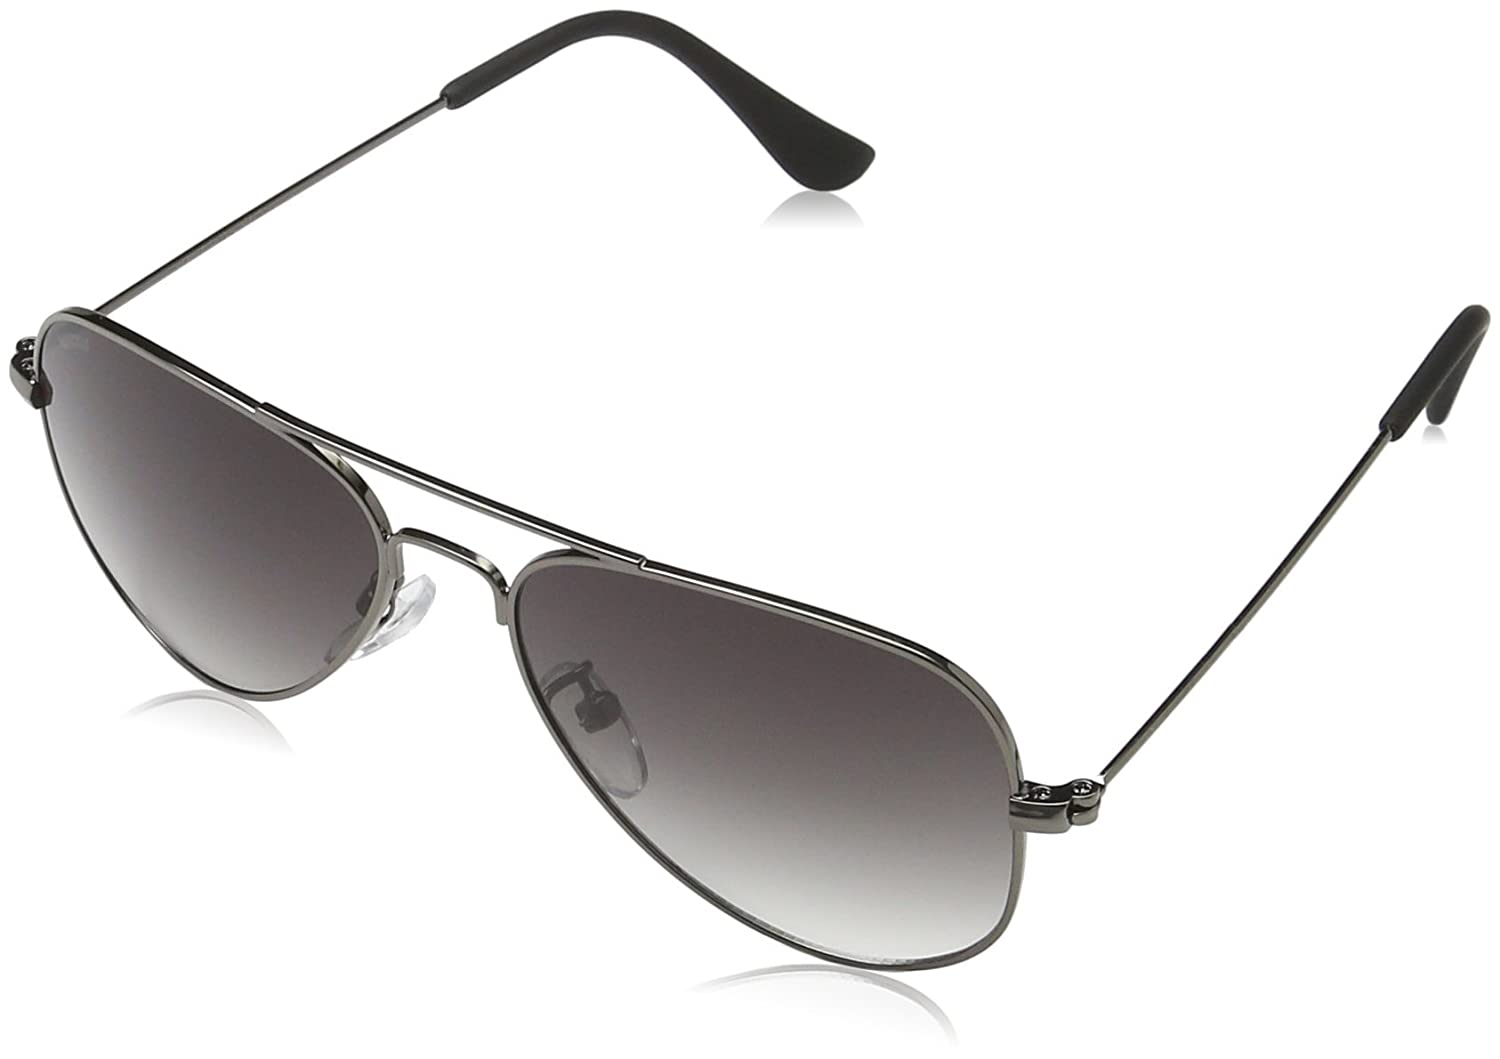 MSTRDS Boy's Pureav Youth Sunglasses (Gold/Brown) One Size Masterdis GmbH 10637_Y